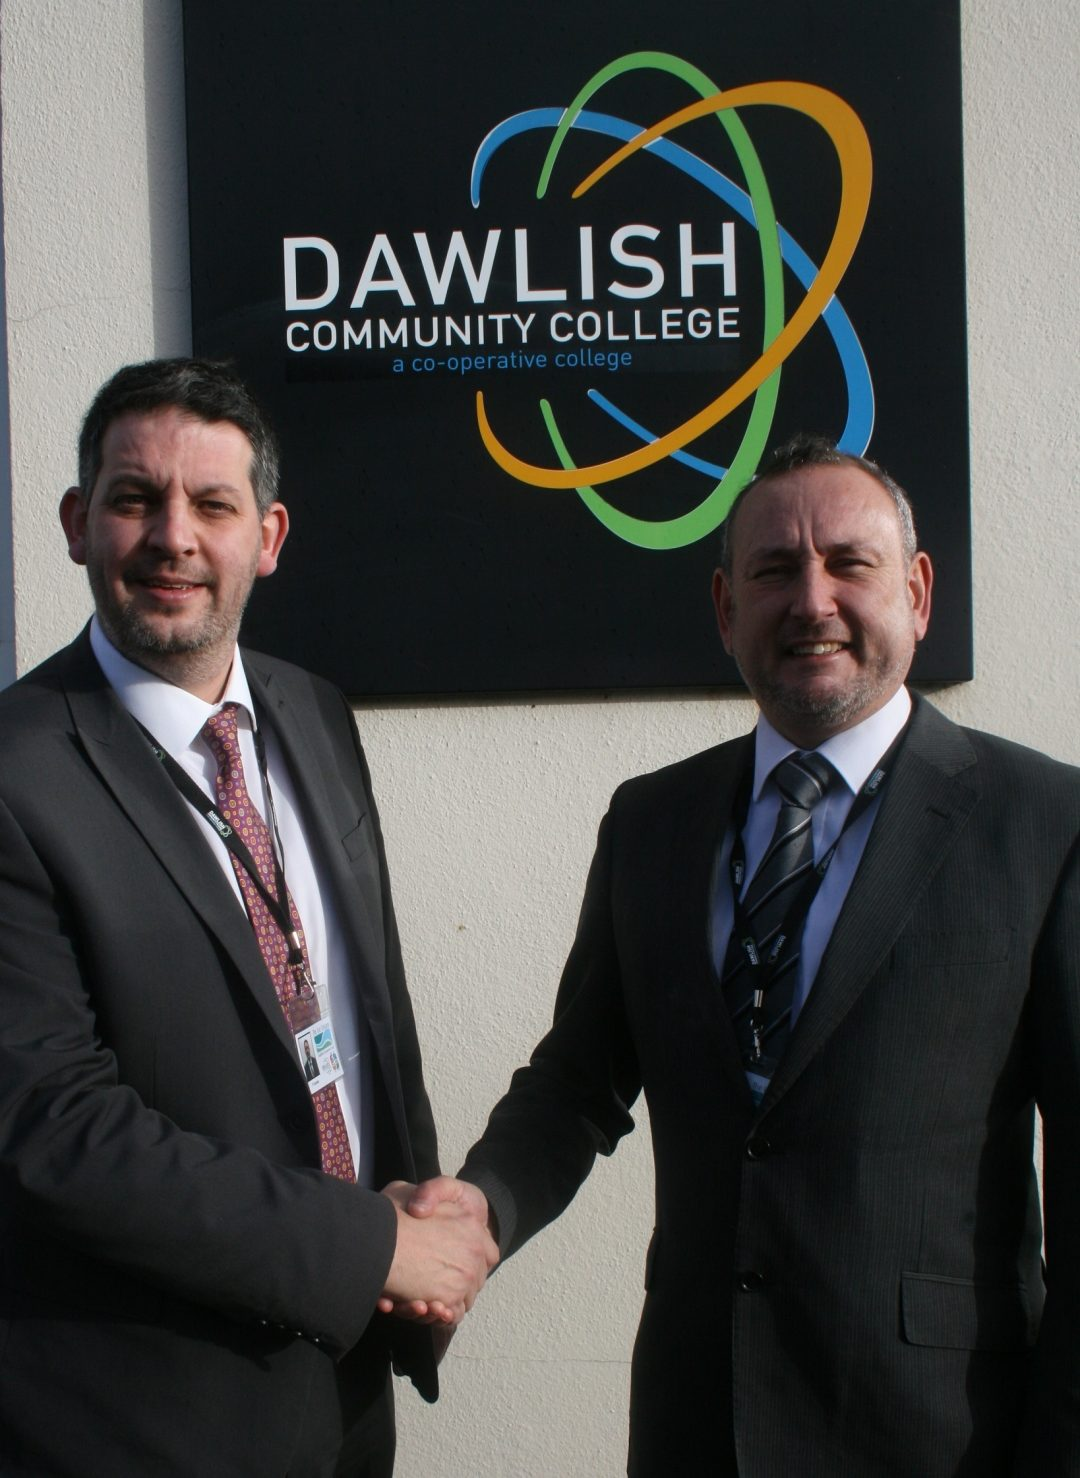 Right – John Simons, Principal Dawlish Community College       Left – Paul Cornish, Executive Principal Newton Abbot College + Dawlish Community College